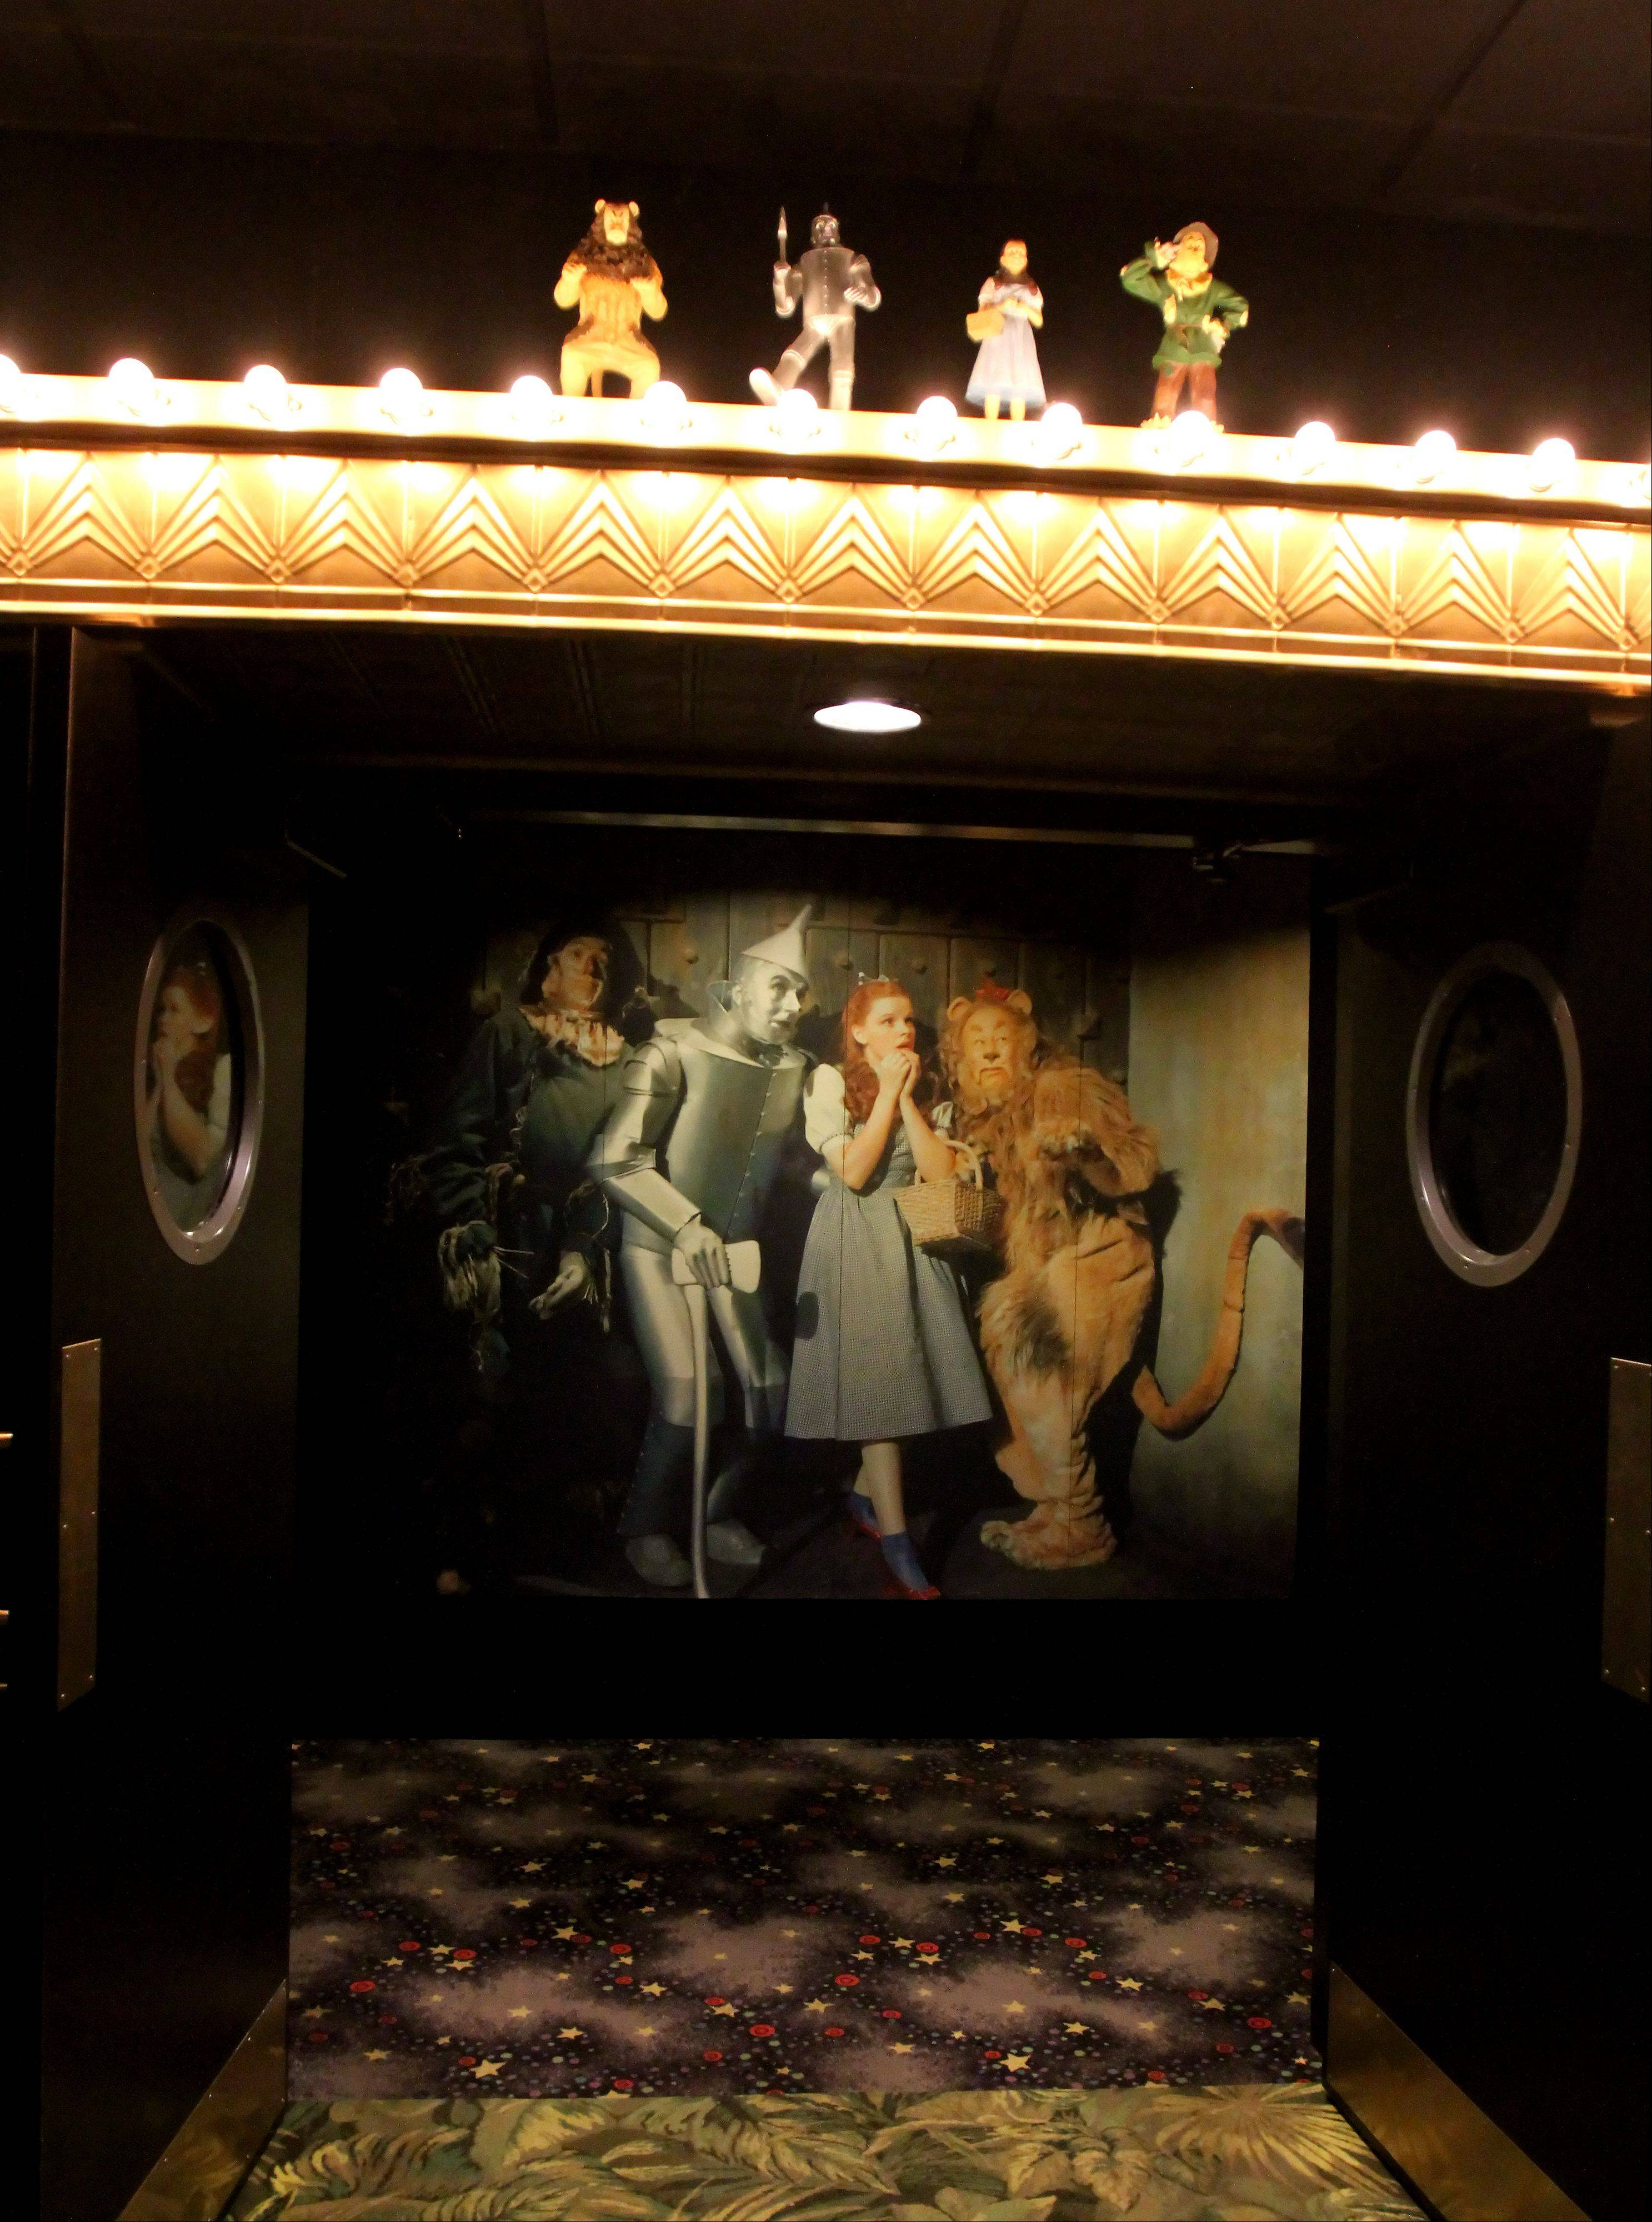 Entrance to the Wizard of Oz theater at the Hollywood Palms Cinema in Naperville.